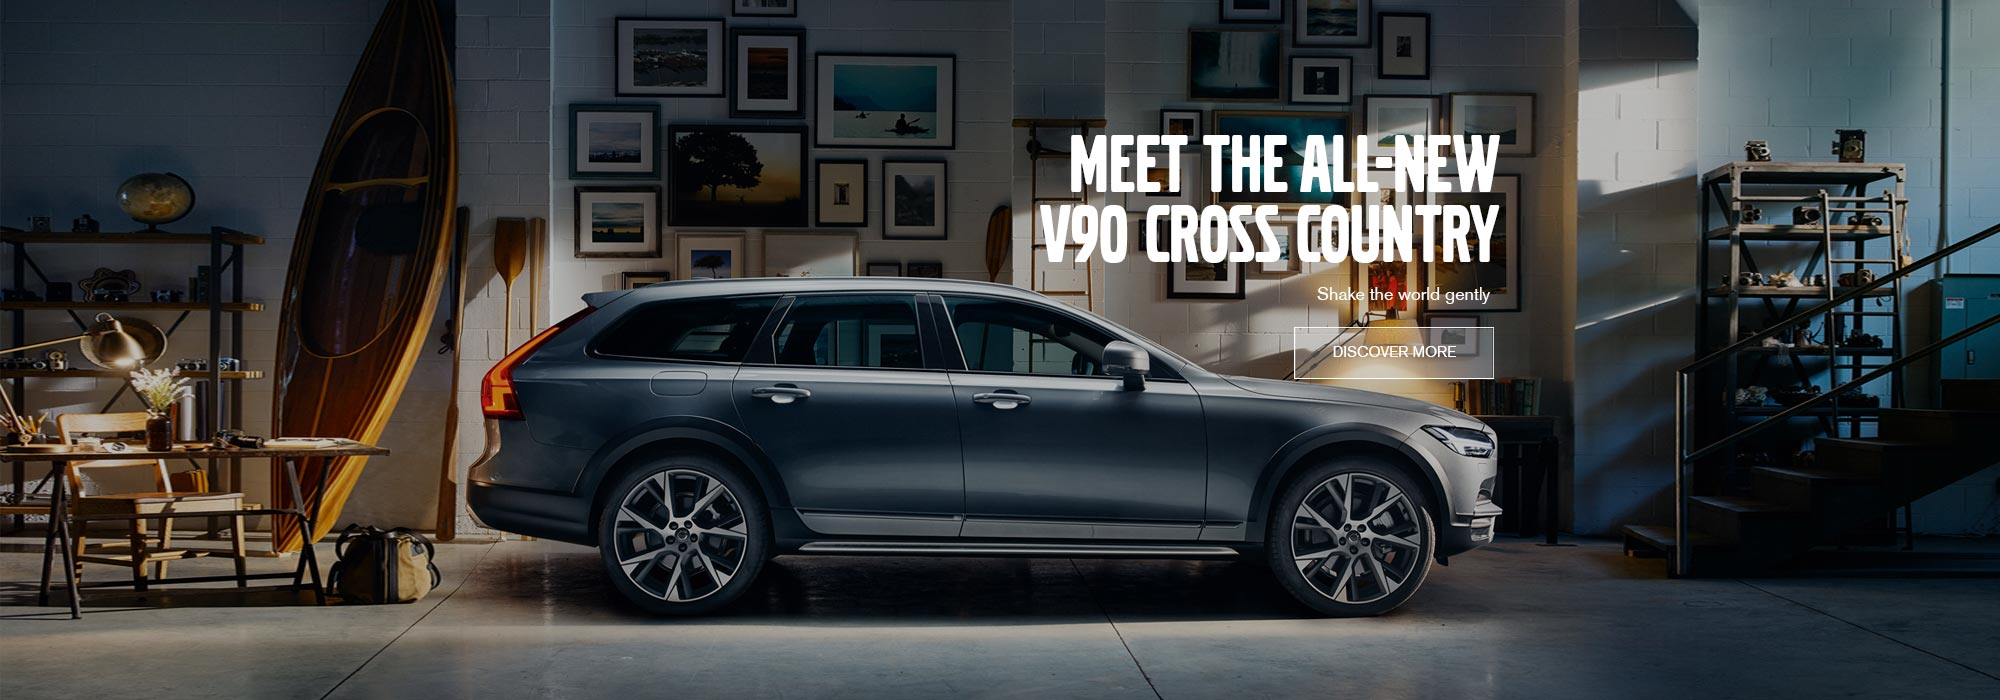 Meet the new V90 Cross Country